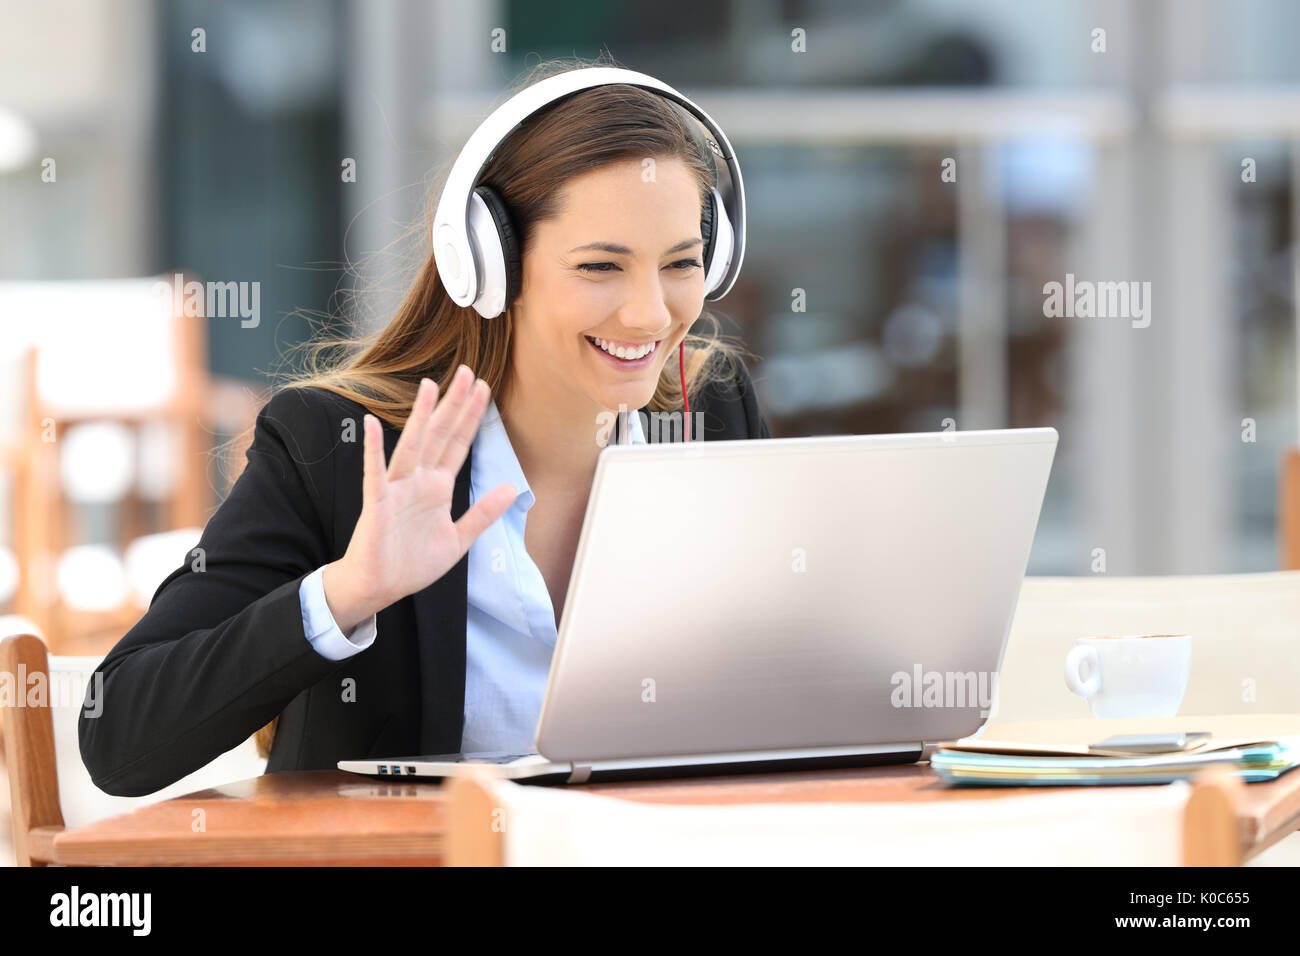 Executive having a video call with a laptop and headphones in a coffee shop - Stock Image